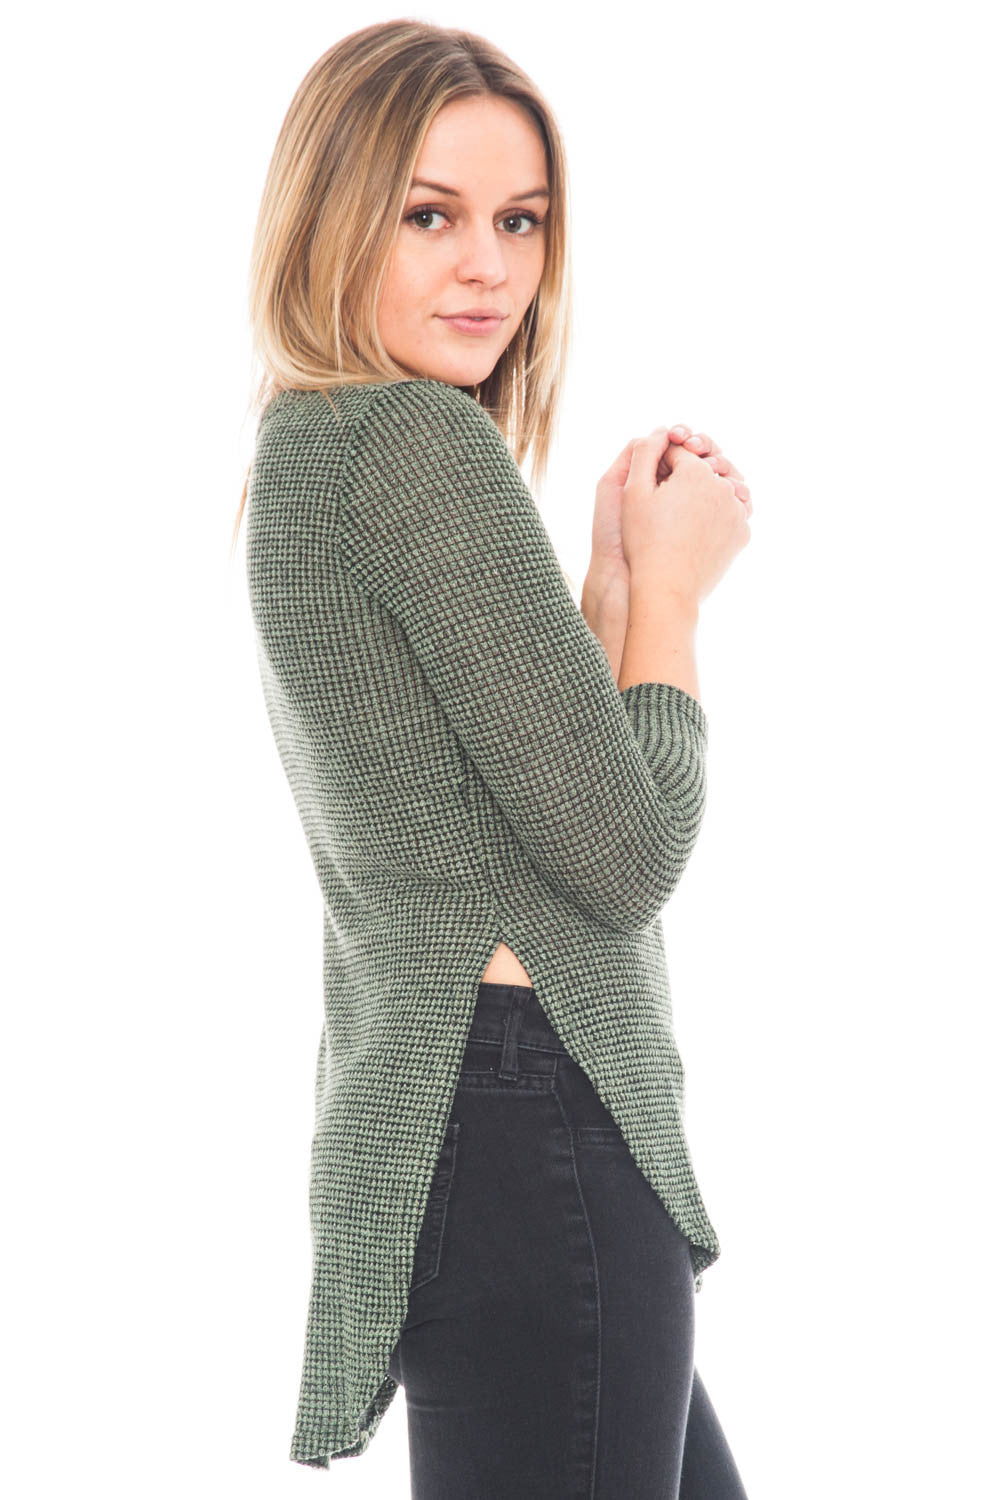 Sweater - 3/4 Sleeve Waffle Knit High Low Top